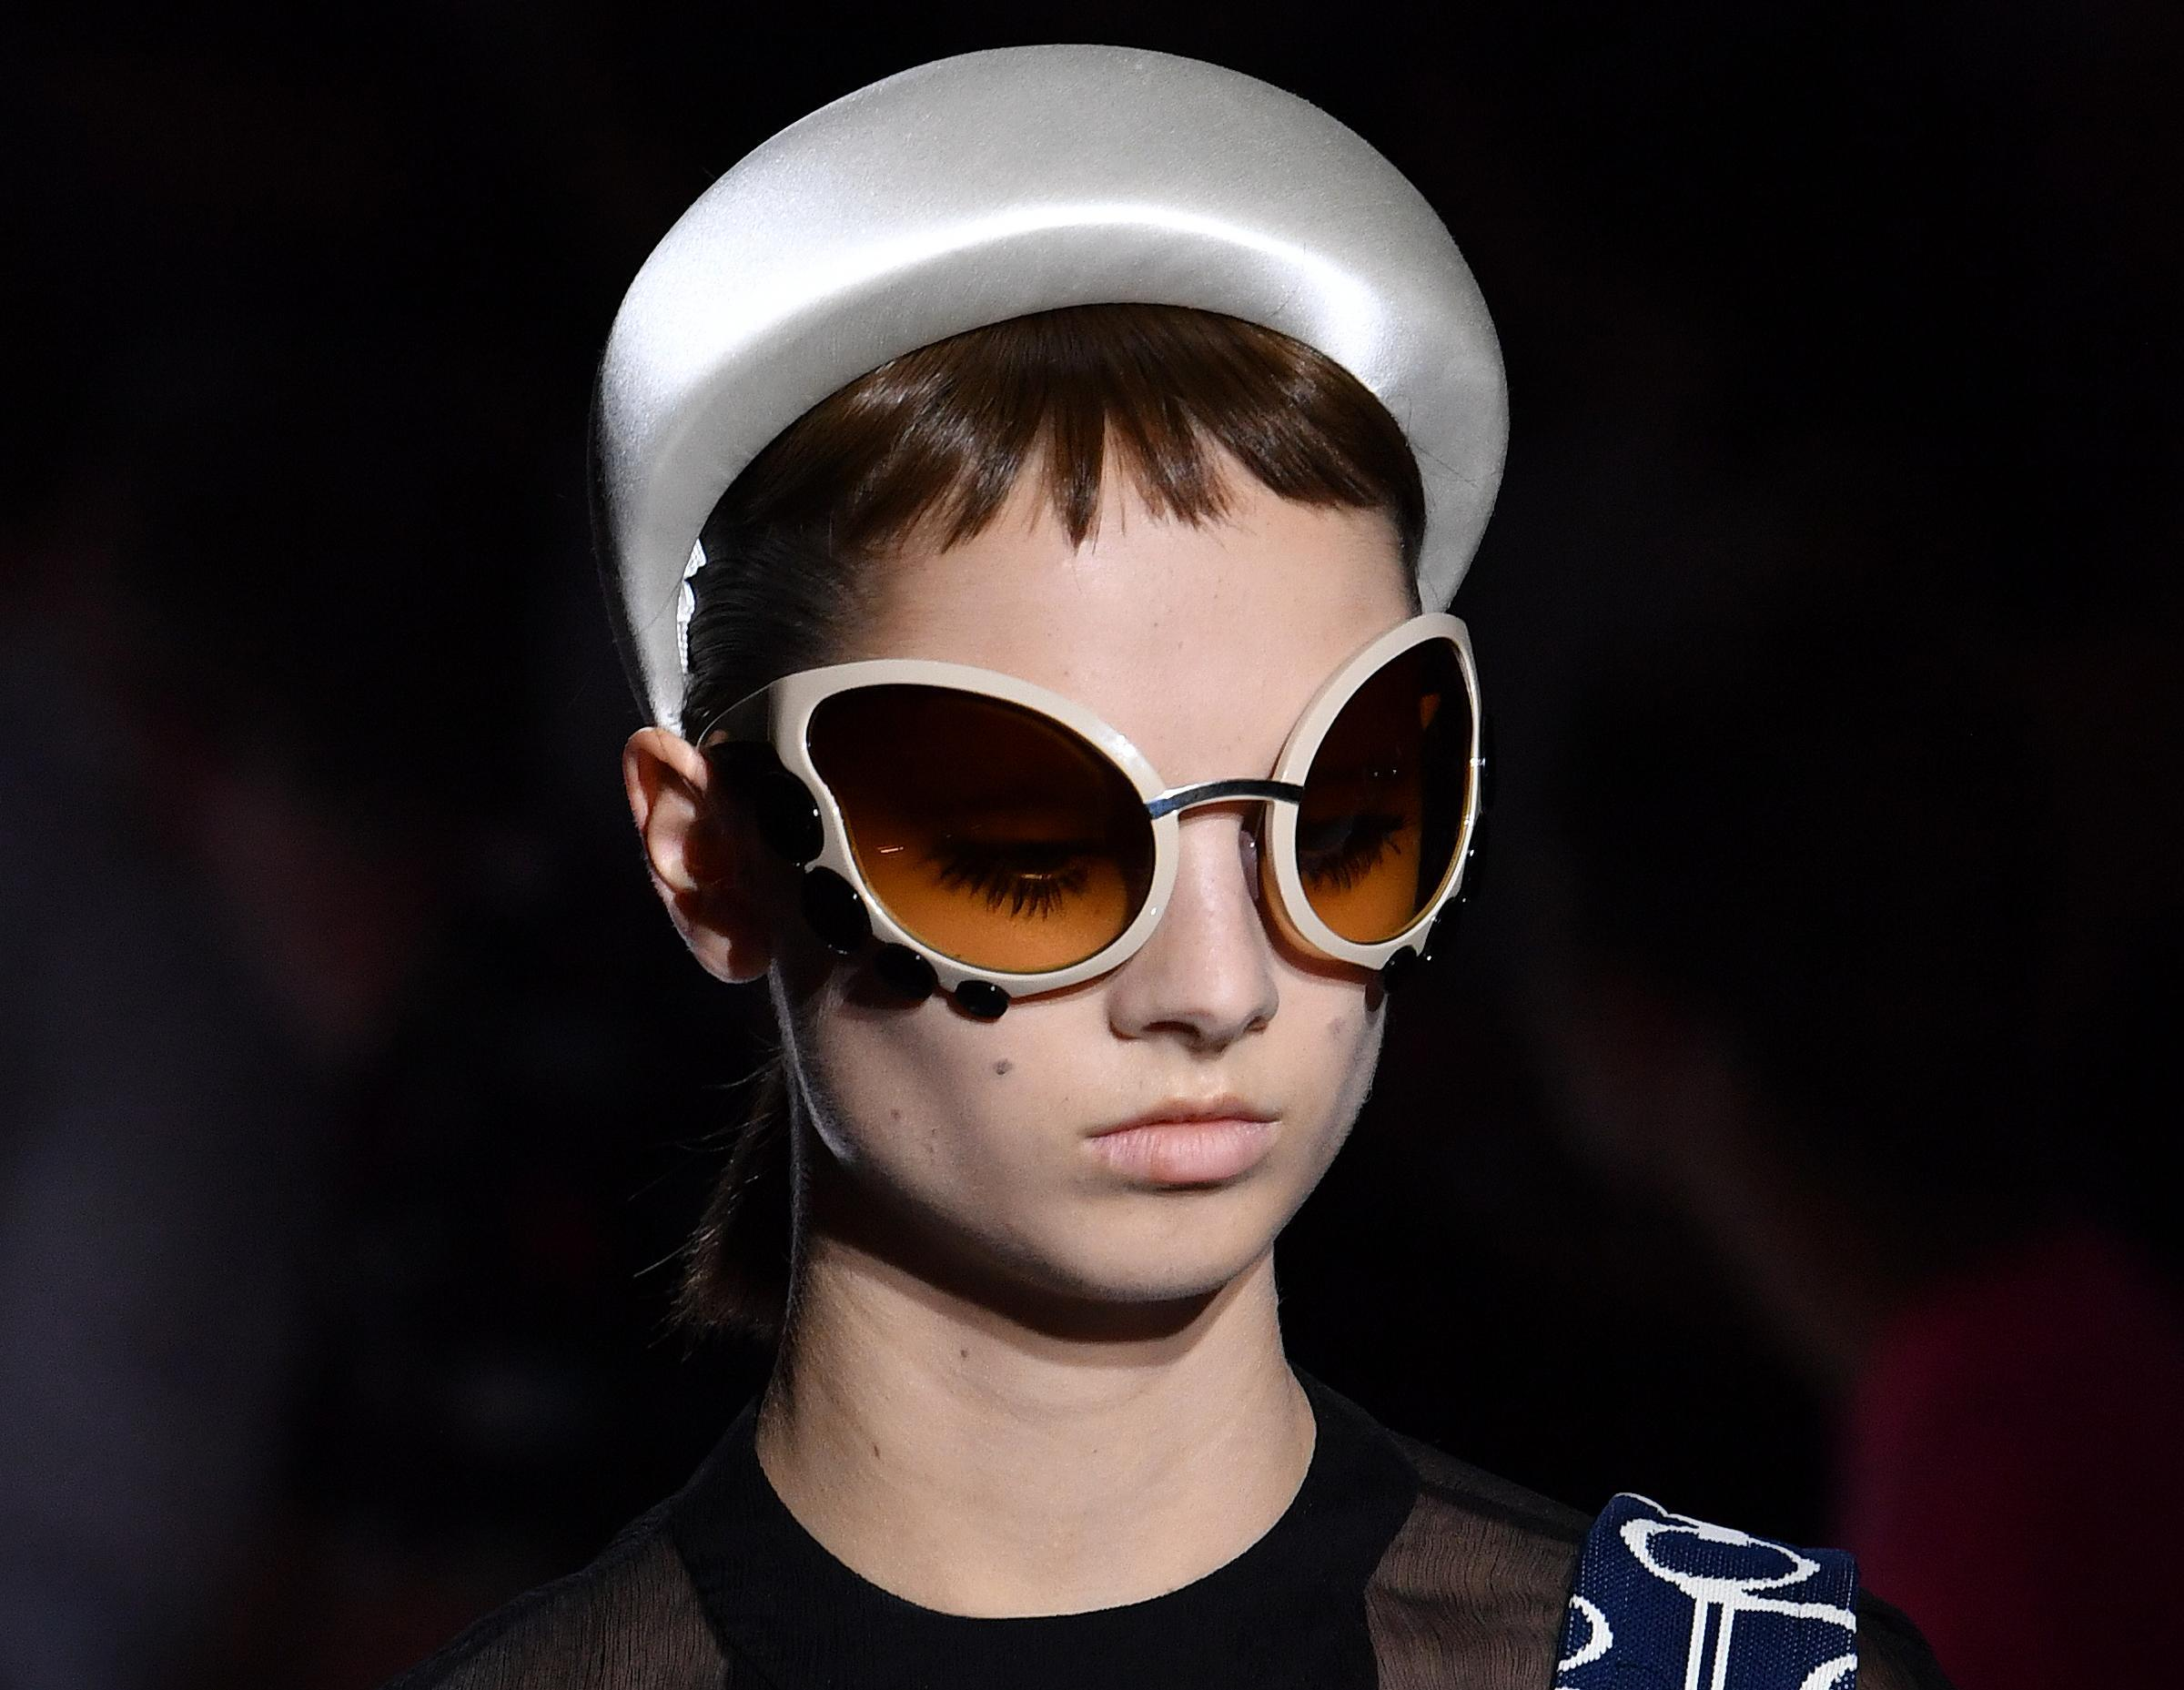 Occhiali da sole Prada fashion week milano 2018